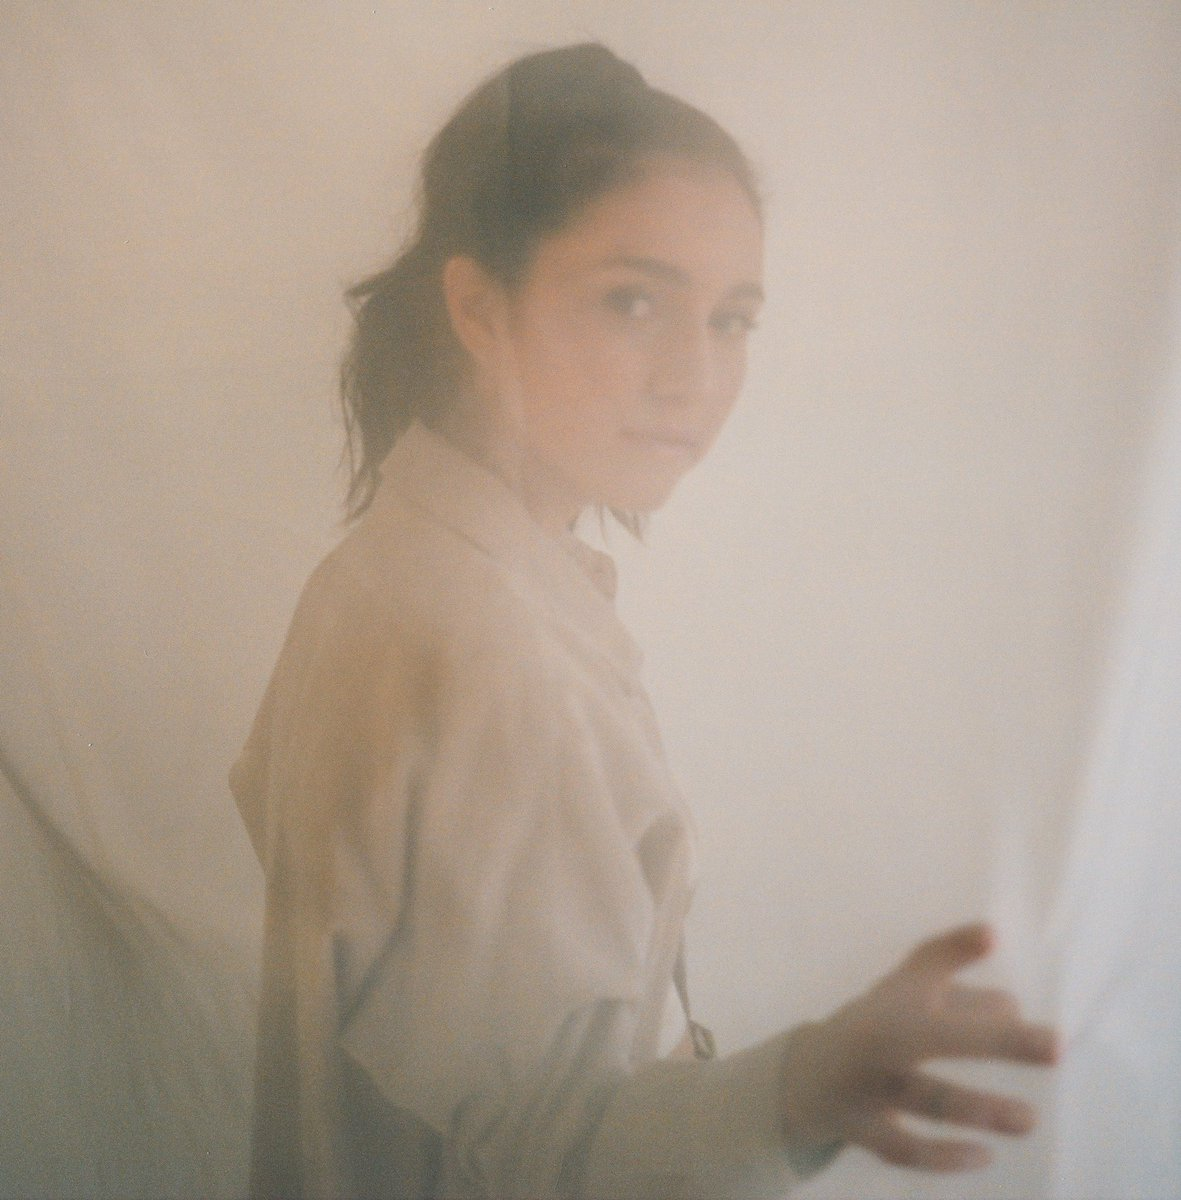 """.@itsLeyeT returns with """"more thoughts"""" EP. MORE: popwrapped.com/leyet-returns-…"""